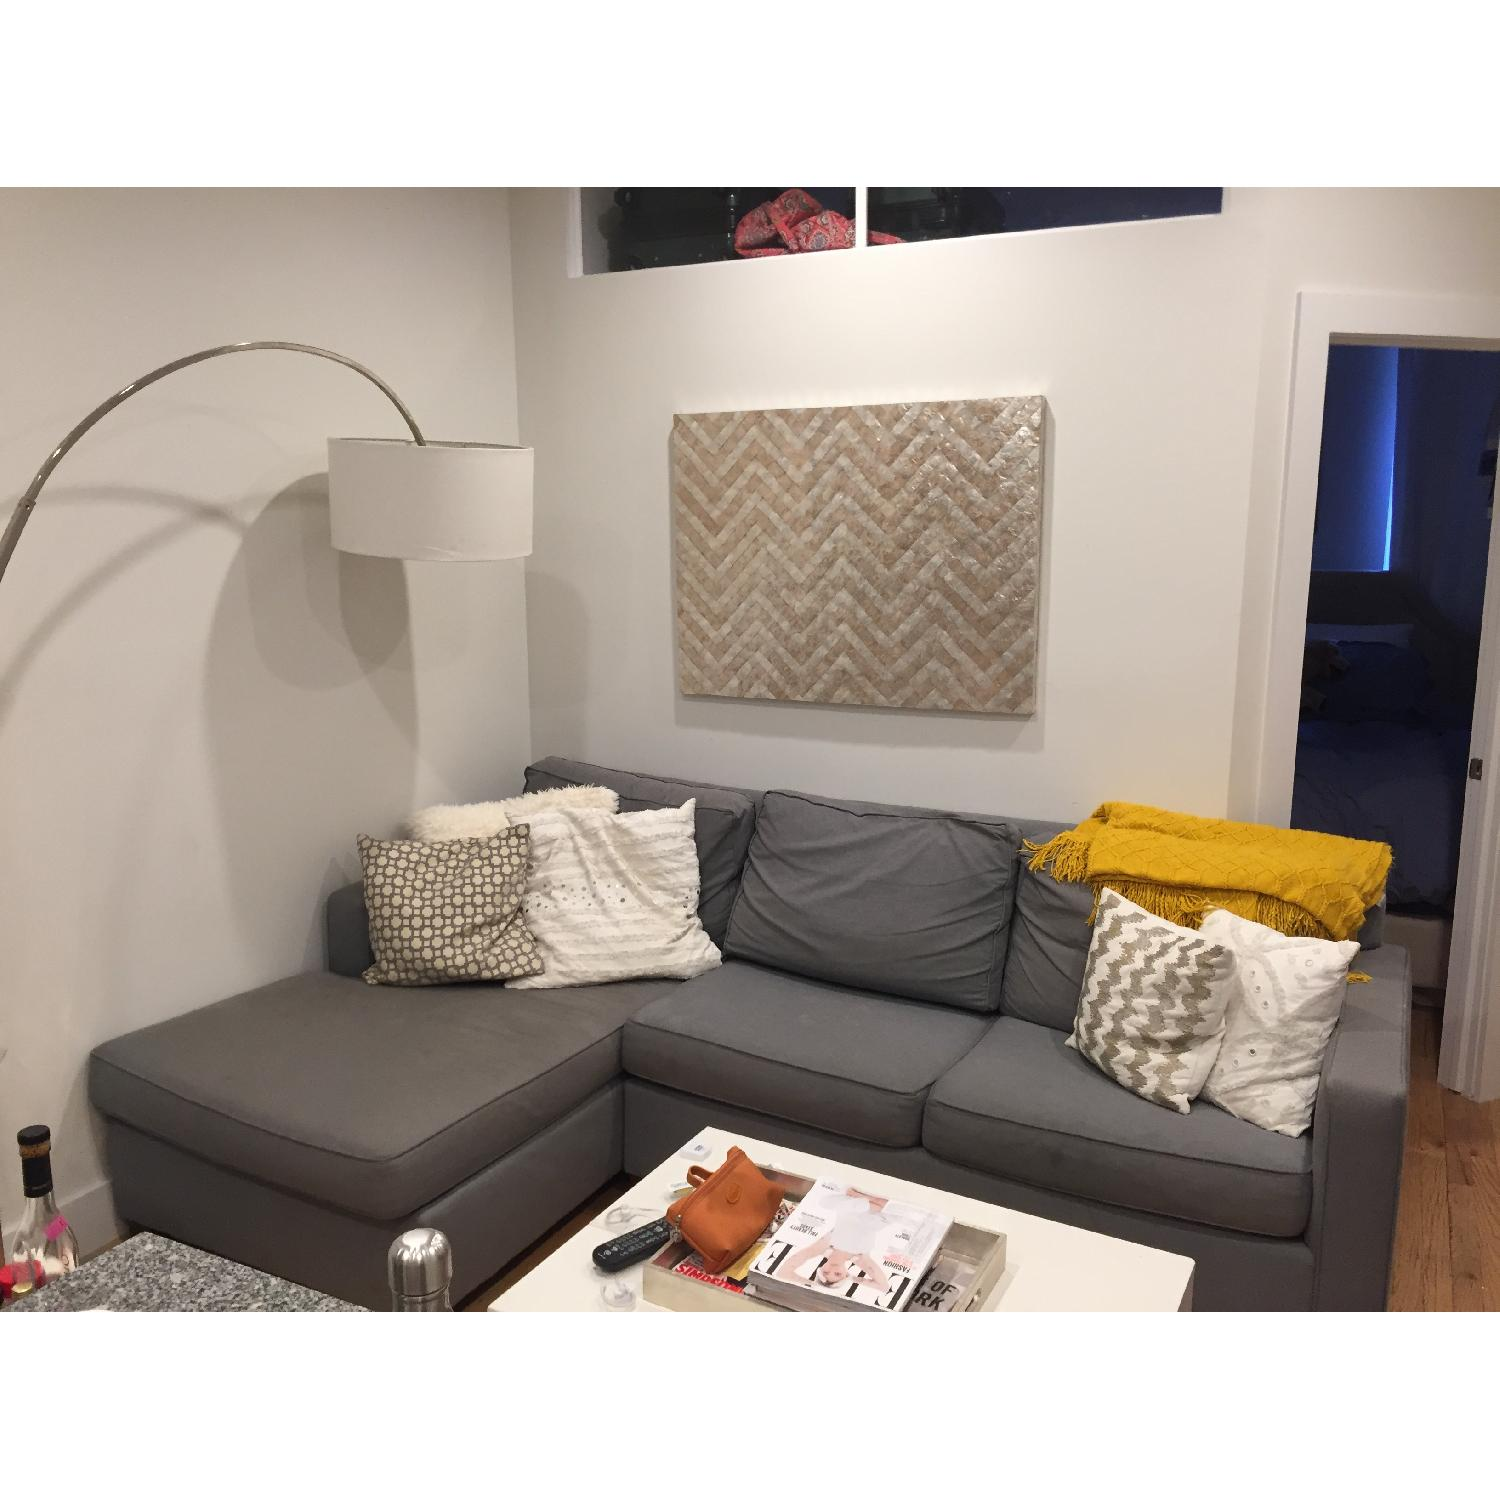 West Elm Henry 2-Piece Chaise Sectional - image-1